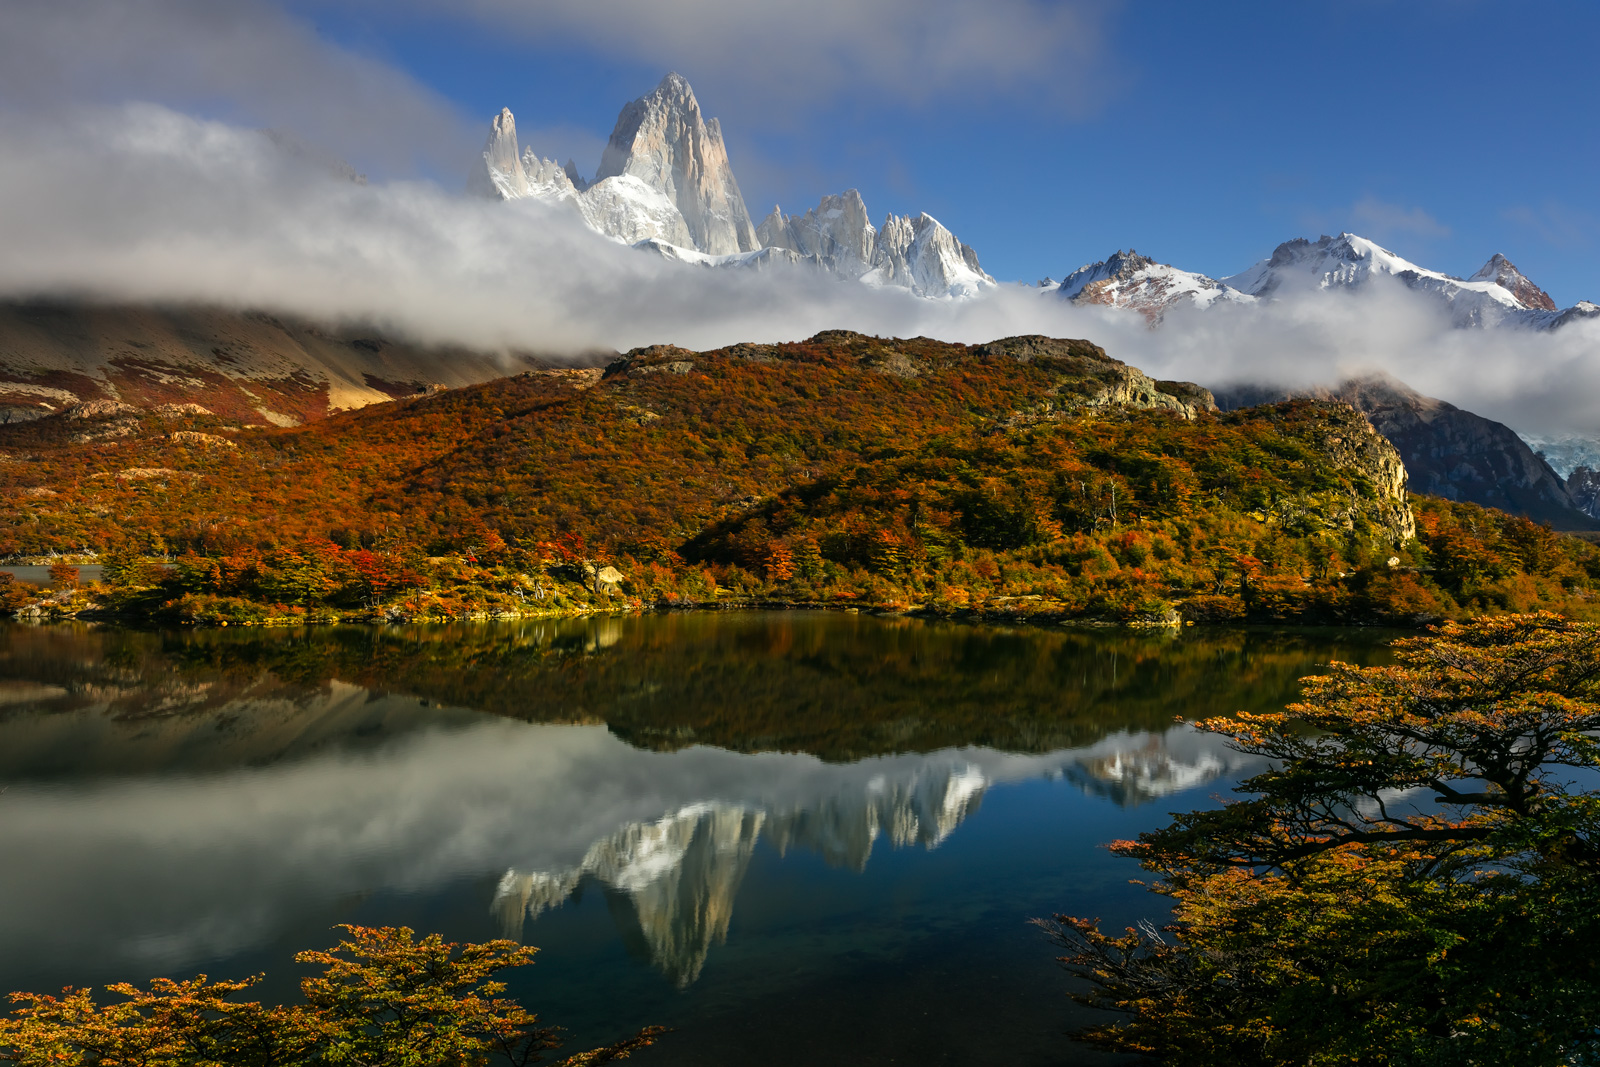 Argentina, Patagonia, Fitz-Roy, Laguna Capri, limited edition, photograph, fine art, landscape, photo